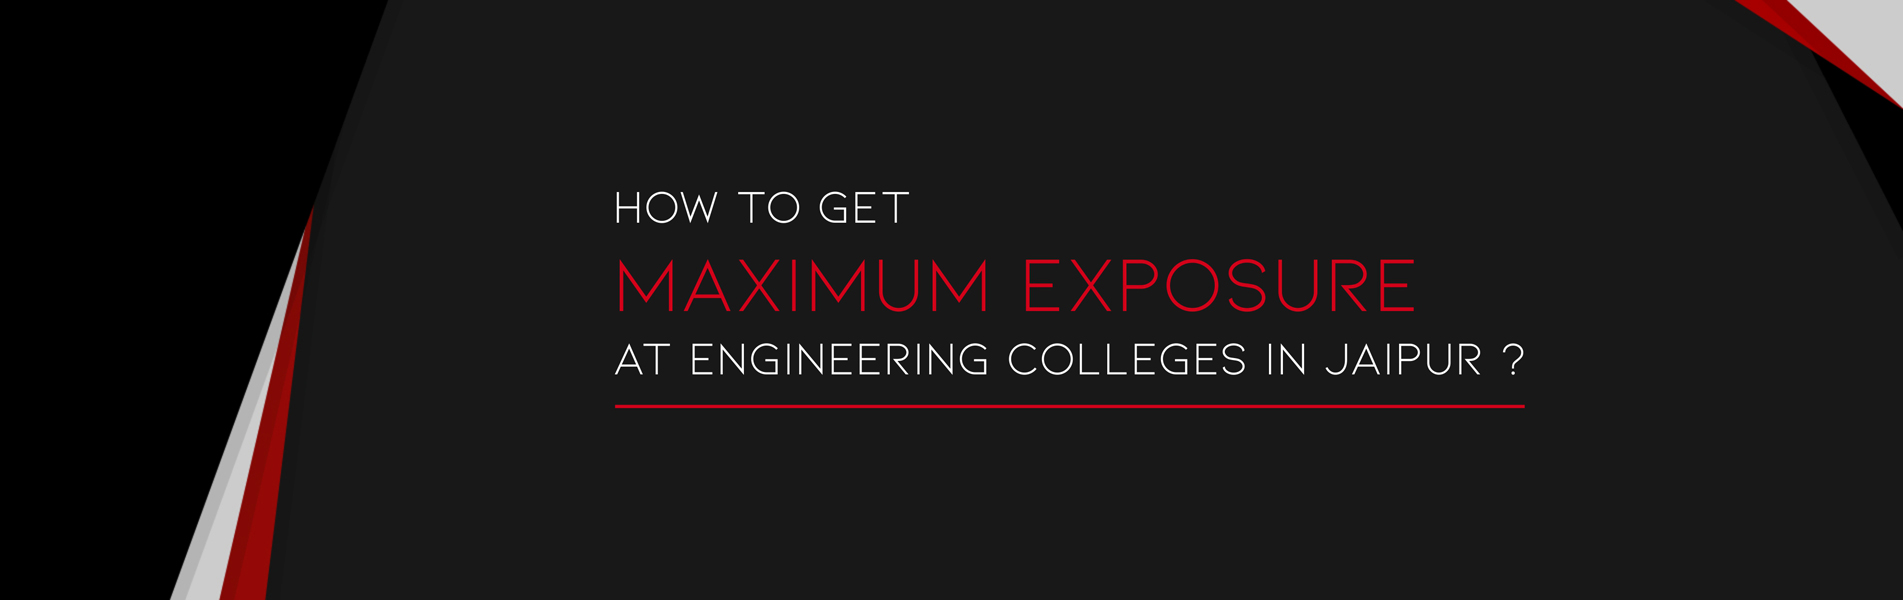 How-to-Get-Maximum-Exposure-at-Engineering-Colleges-in-Jaipur